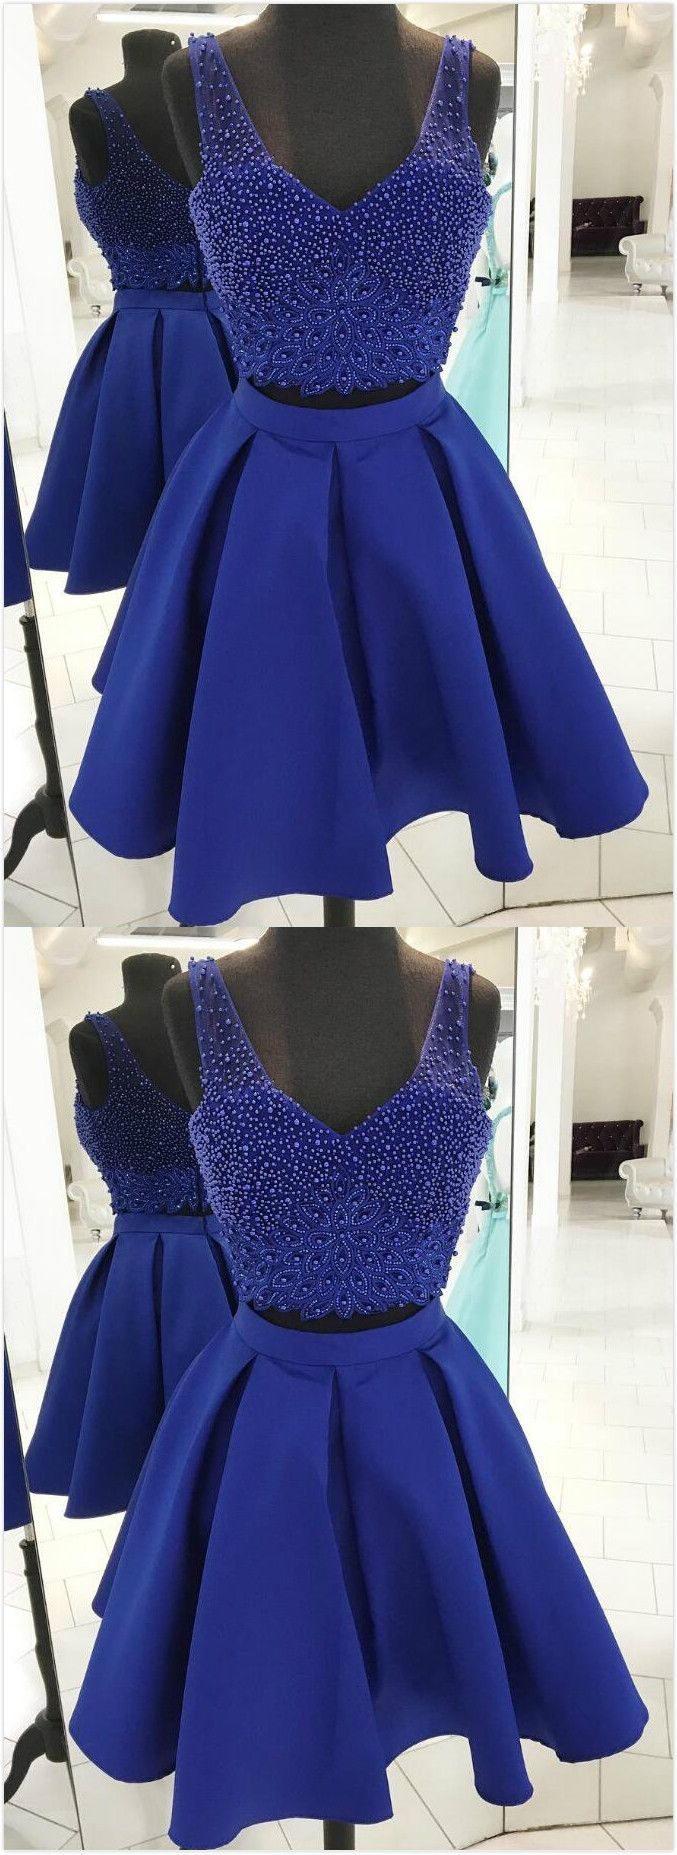 Sexy homecoming dresses,Short homecoming dress ,Cheap Stain Homecoming Dress,cute homecoming dresses,homecoming gowns